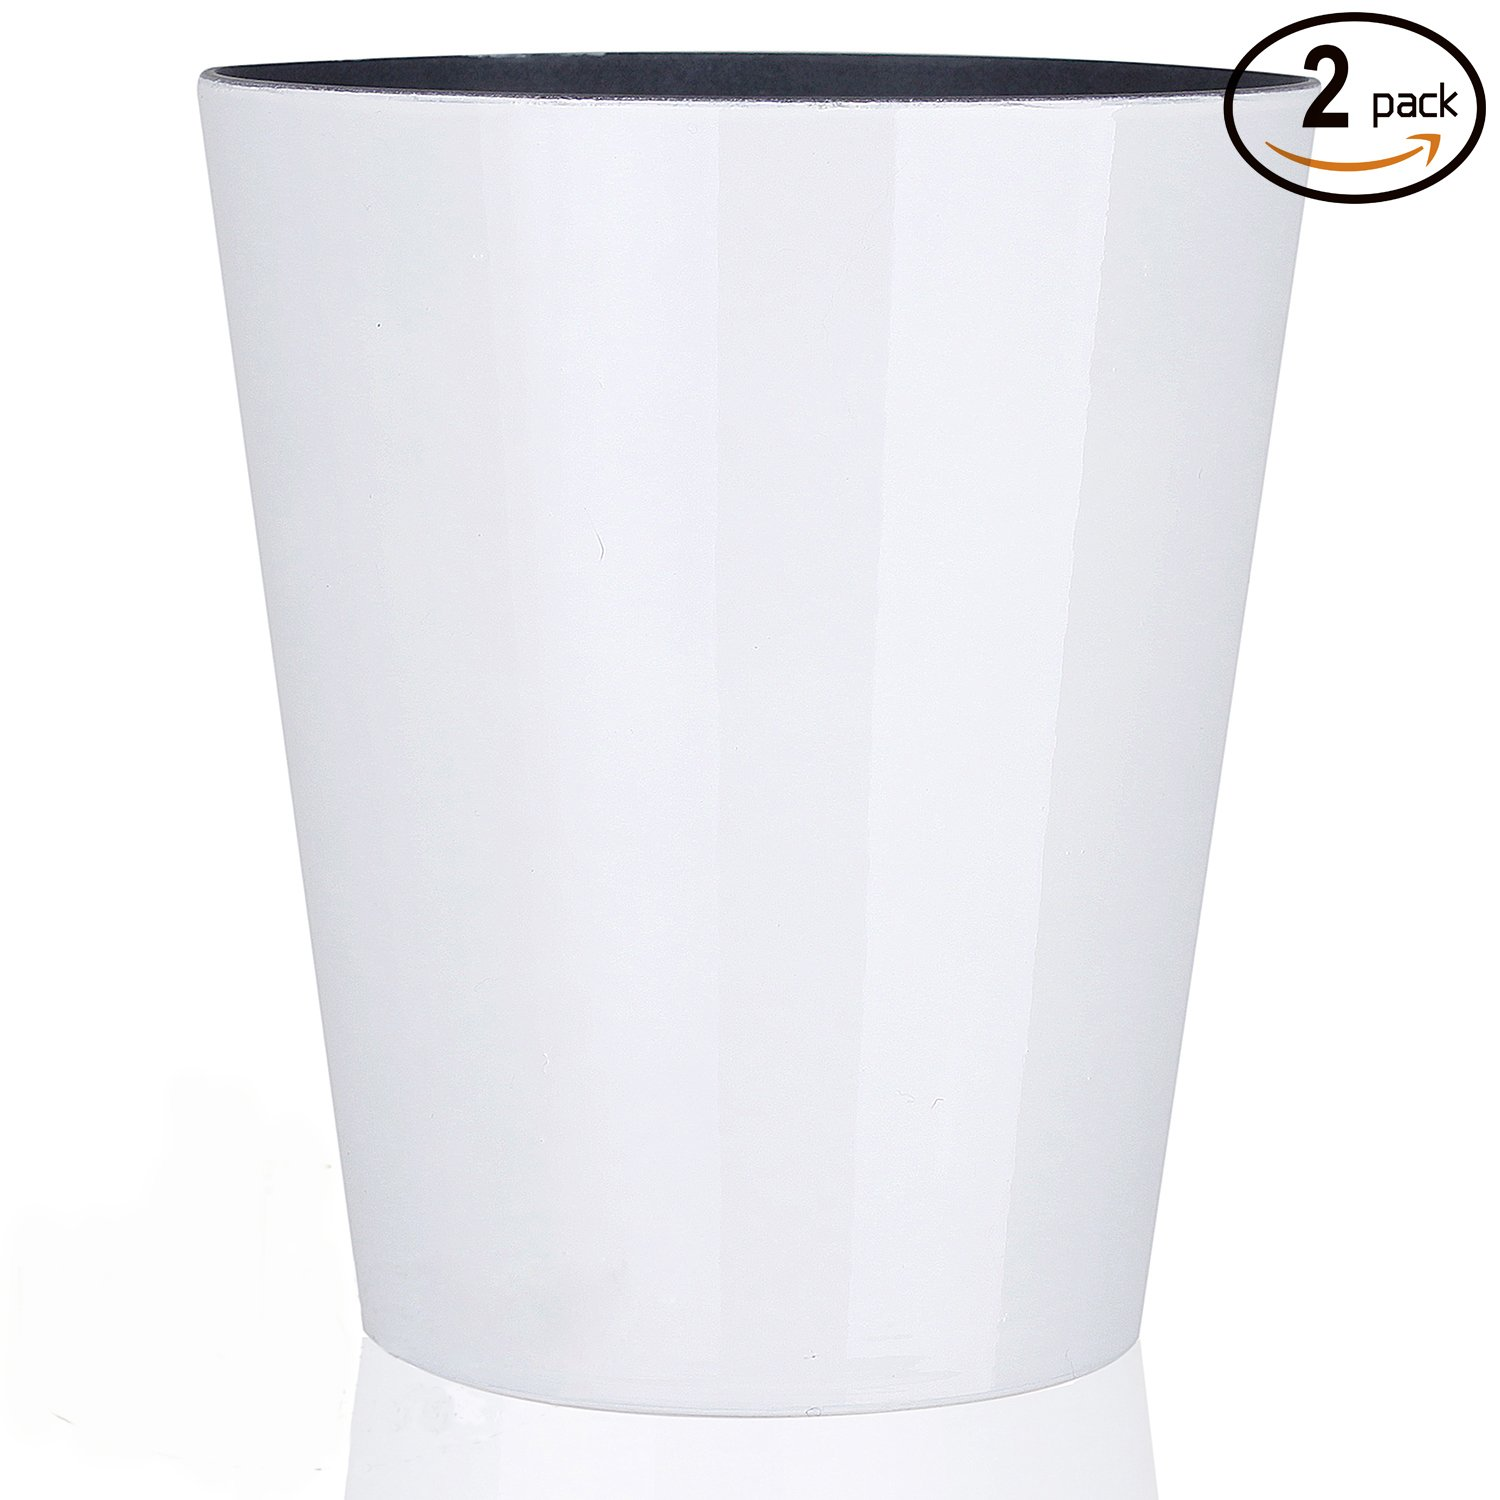 Fantastic:) 2 PACK 5 Inch Decorative Orchid Drop-In Flower Pots for Indoor Gardening and House Plants (Solid Color White S1)